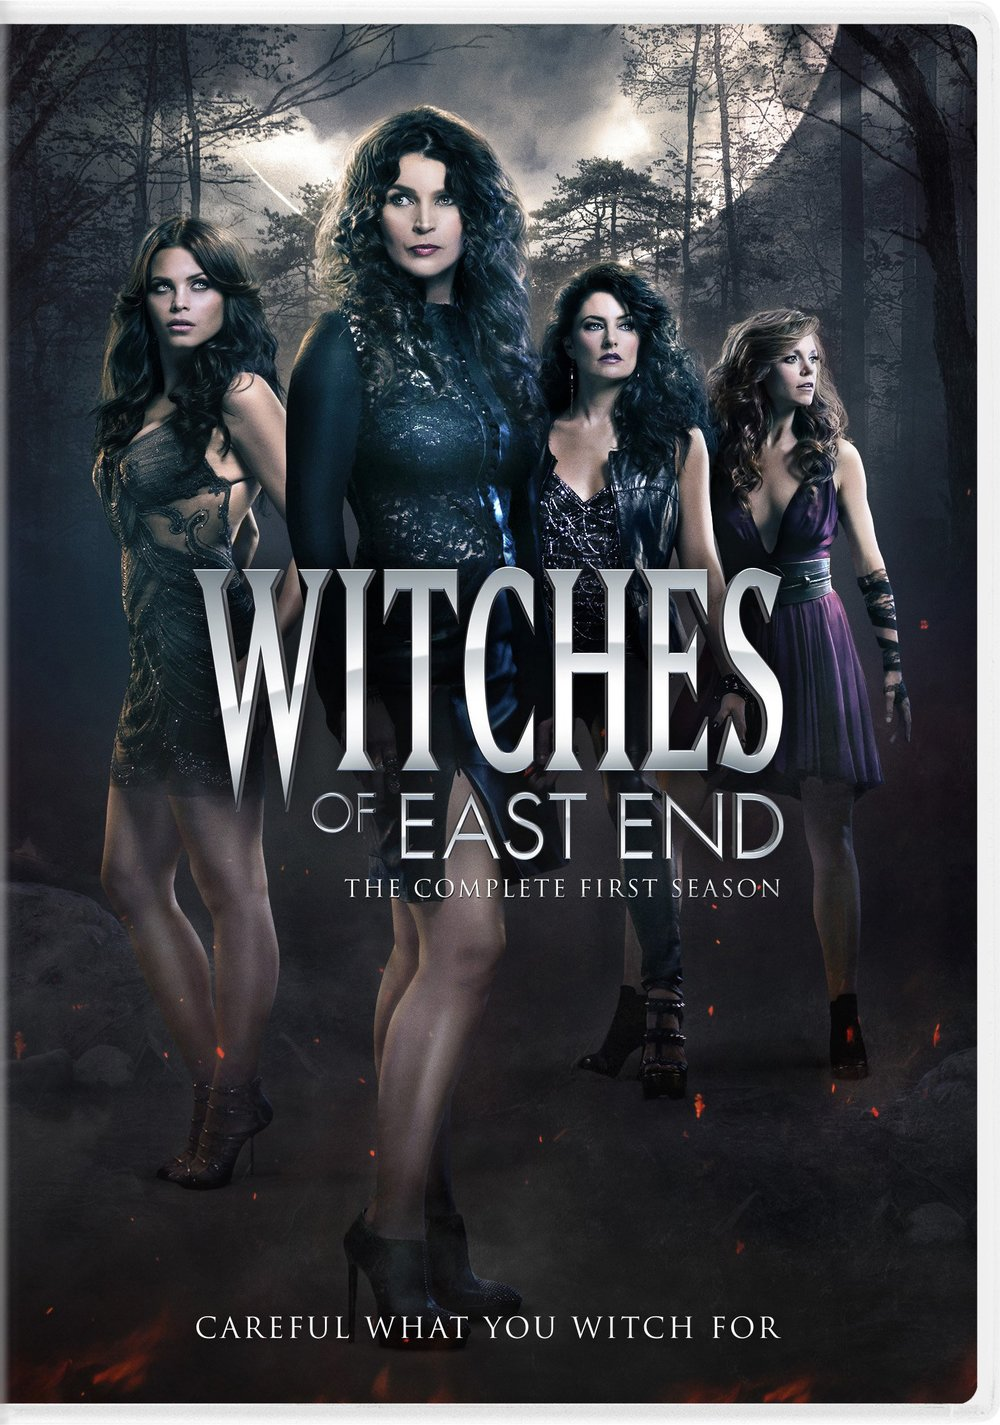 witches-of-east-end-the-complete-first-season-dvd-cover-08.jpg